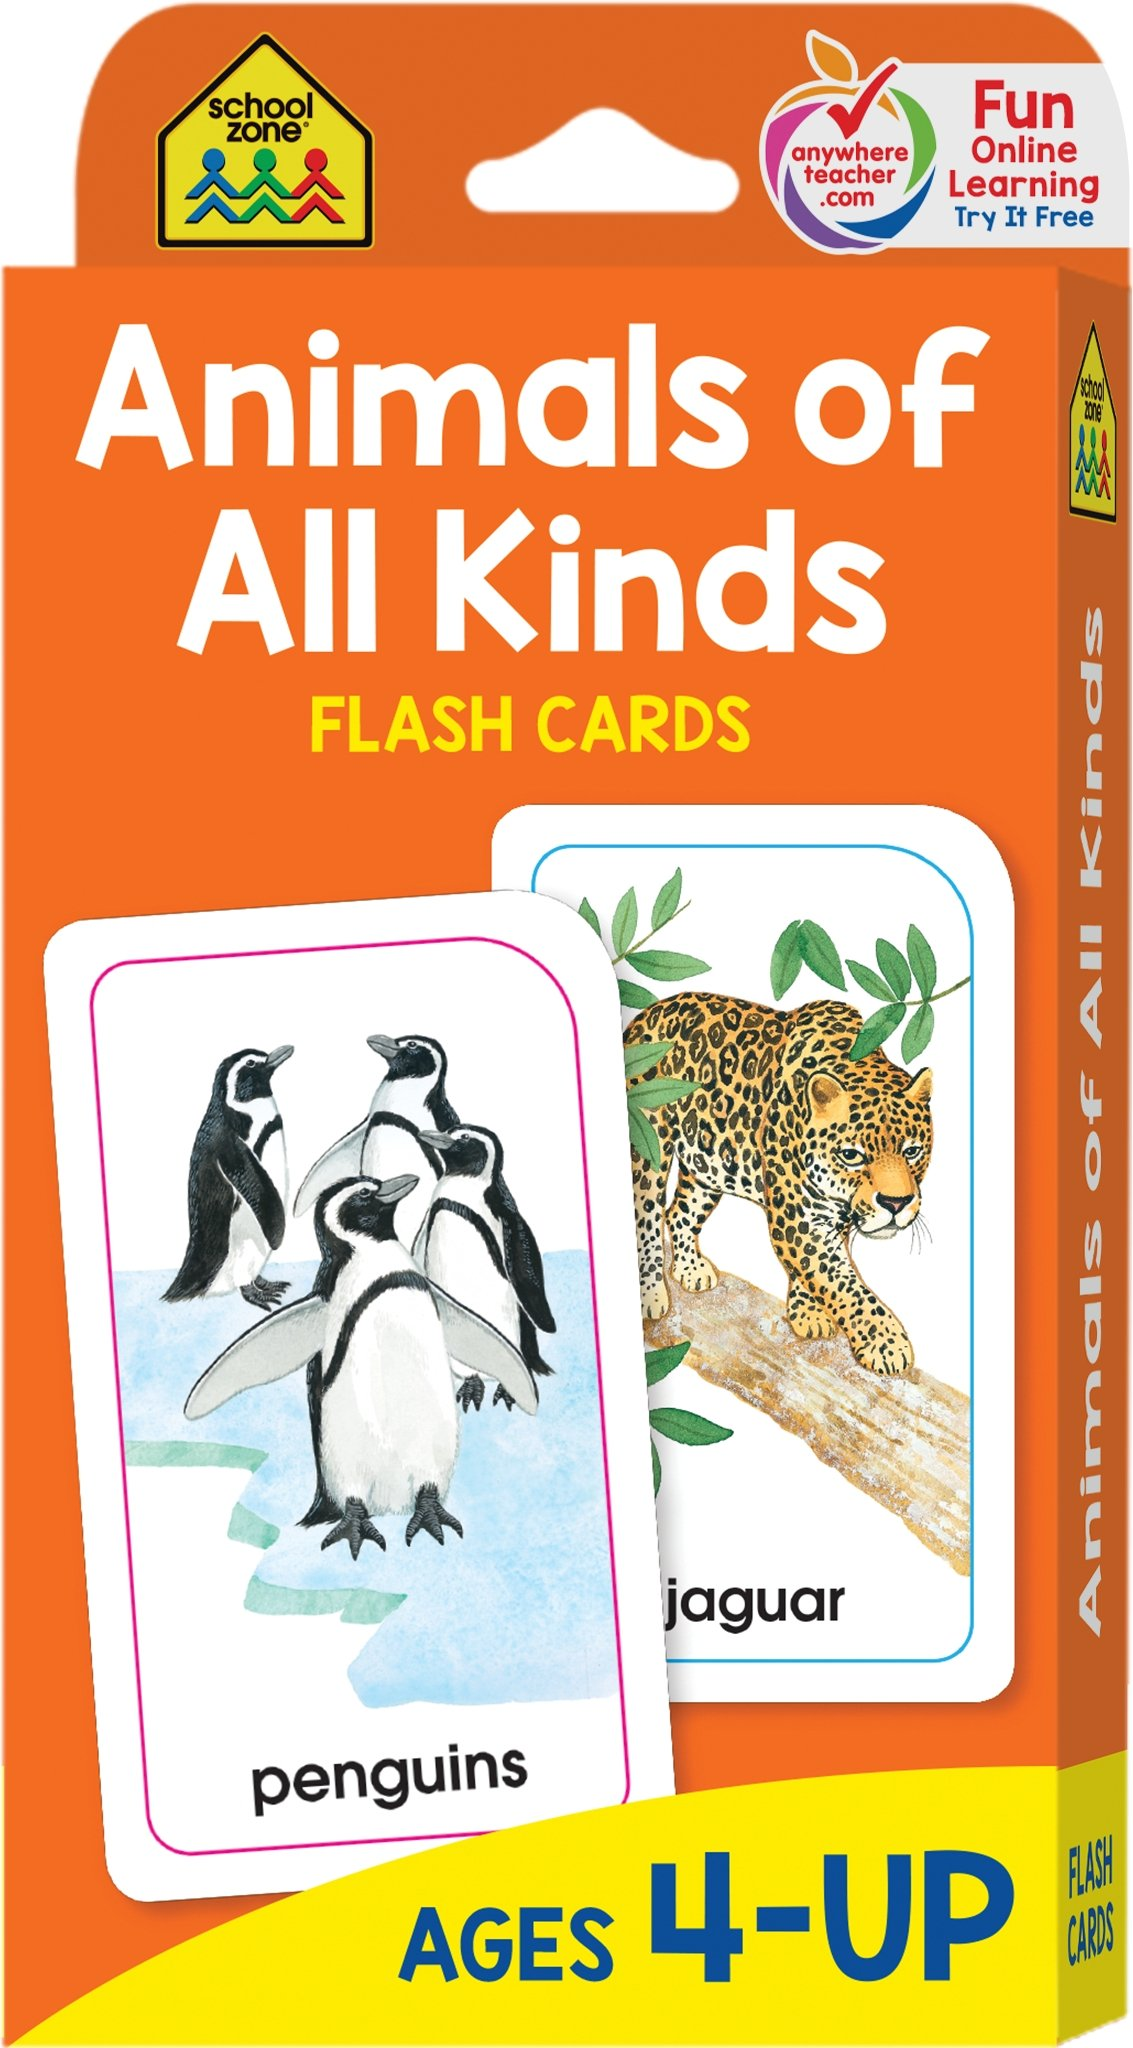 School Zone – Animals of All Kinds Flash Cards